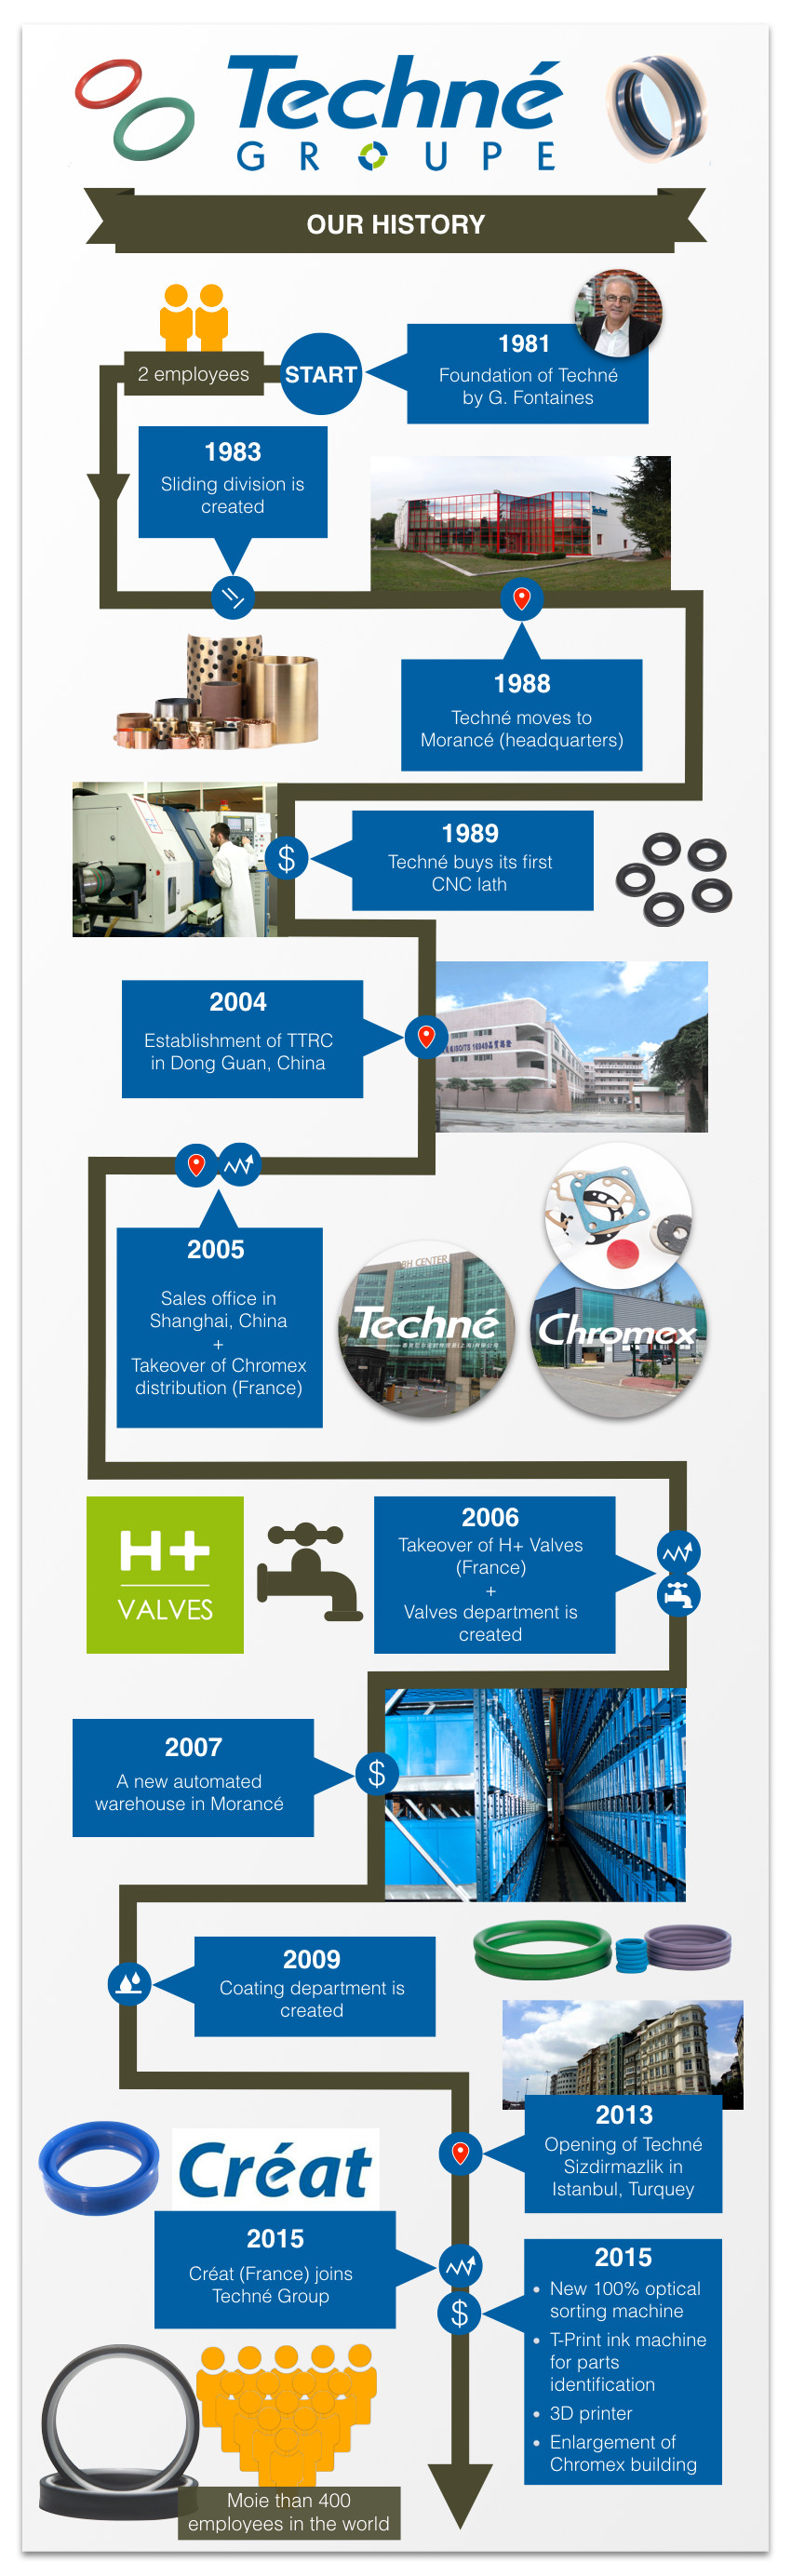 Timeline-Techne-History-Infographic